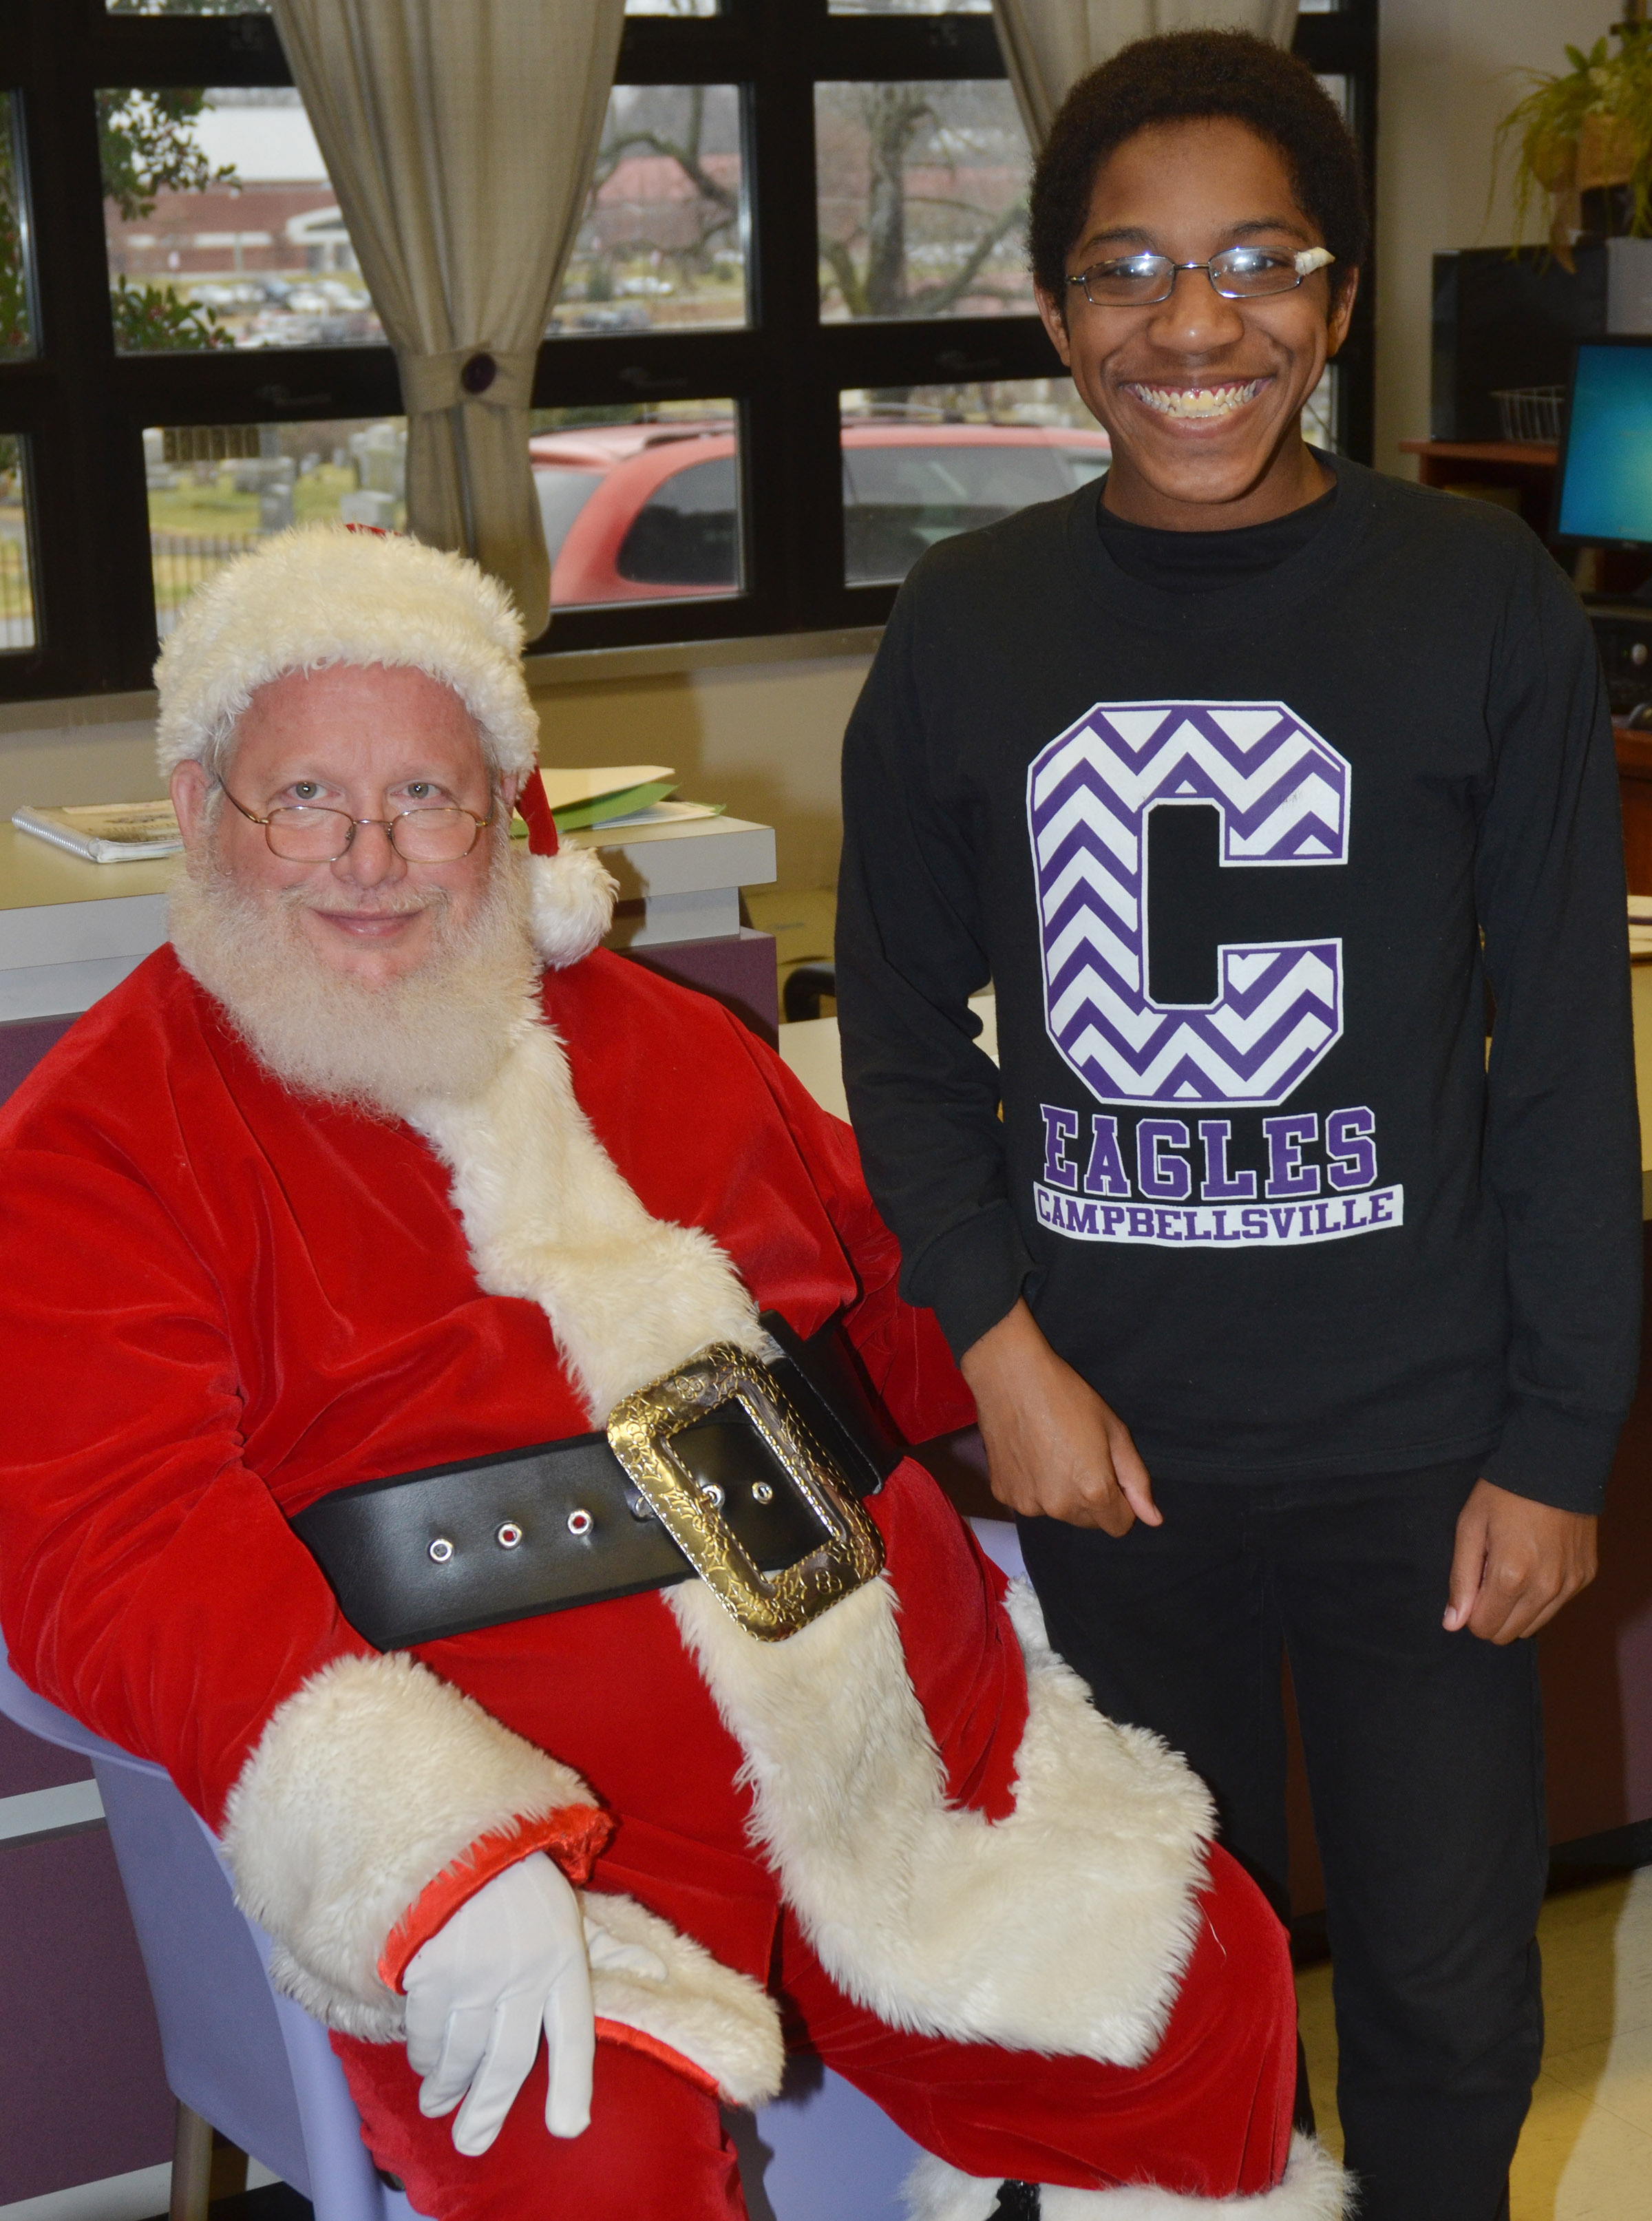 CHS sophomore Travis Nash smiles for a photo with Santa.